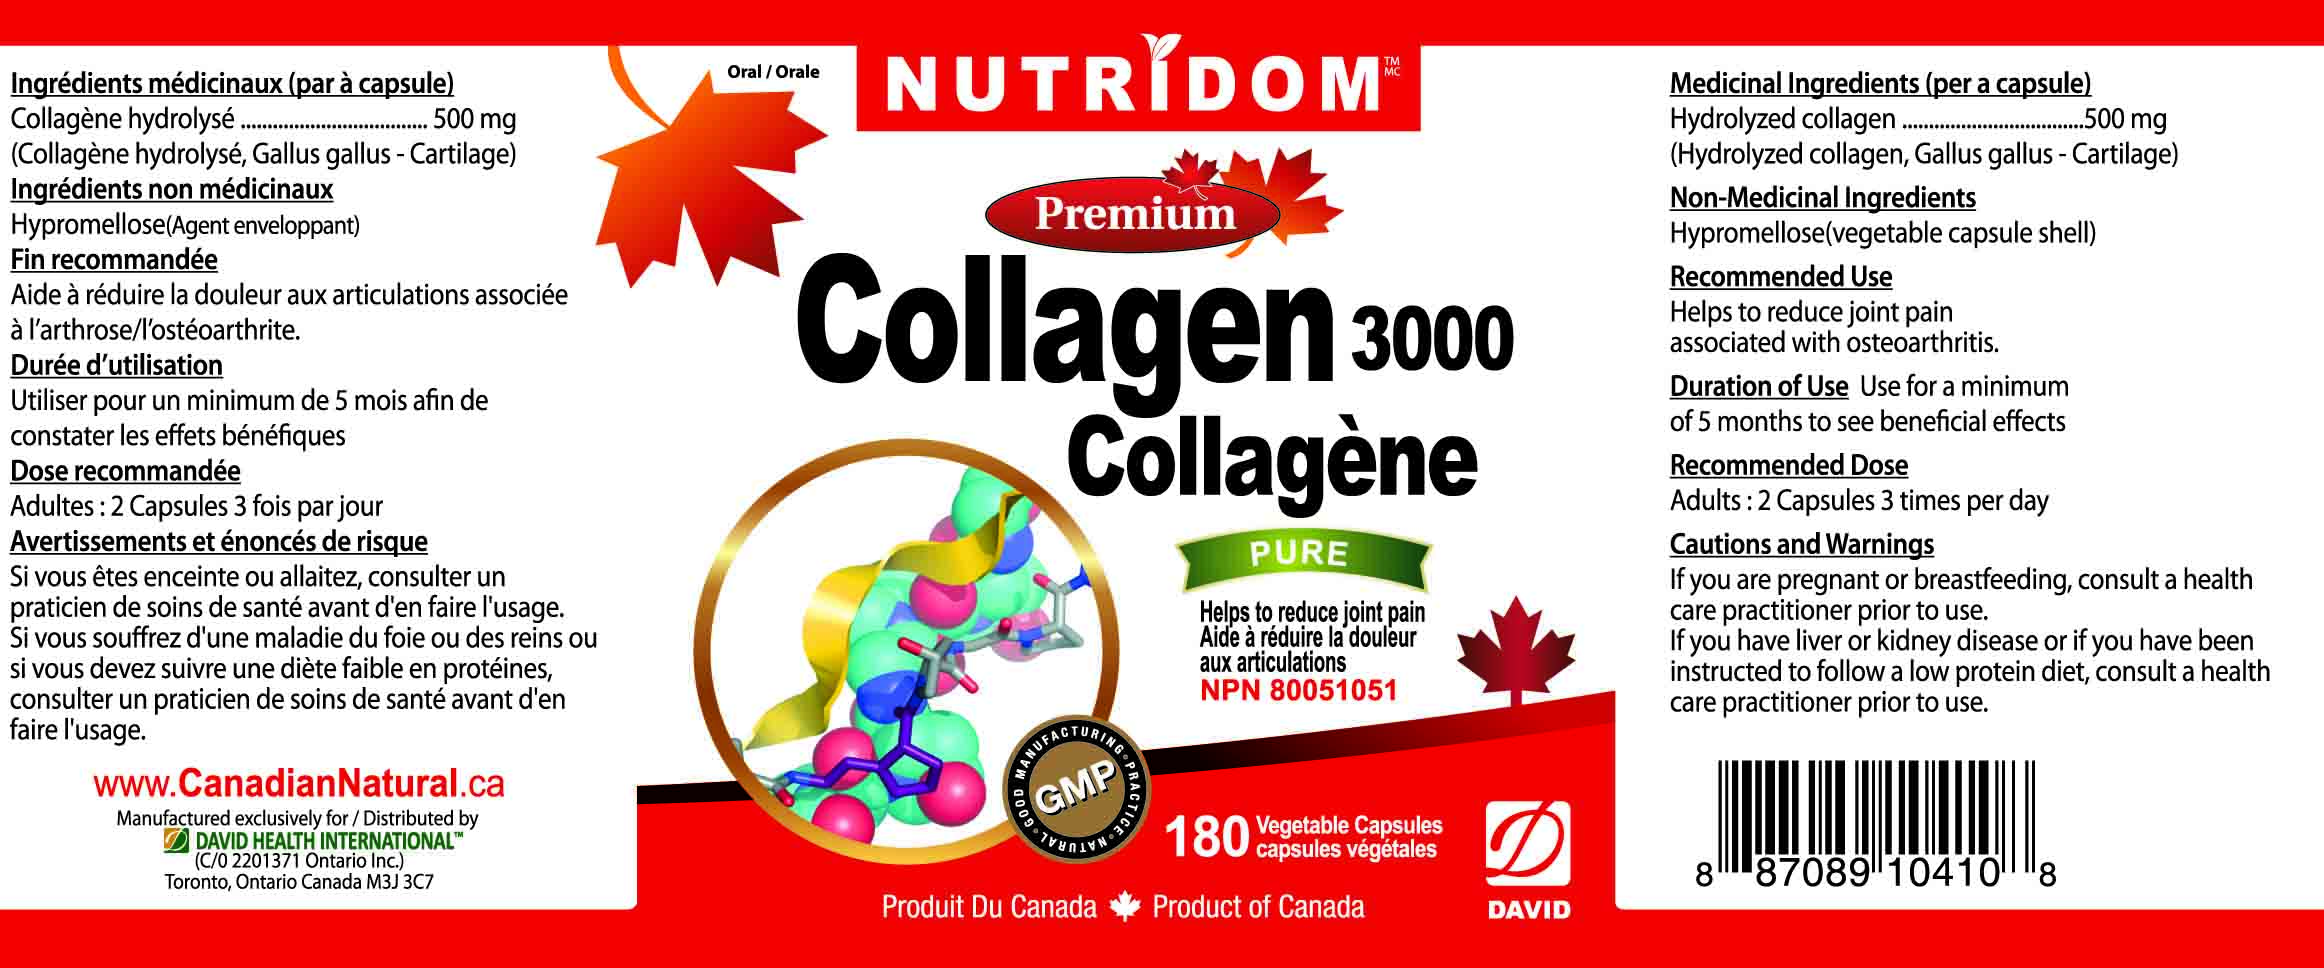 NUTRIDOM COLLAGEN 3000